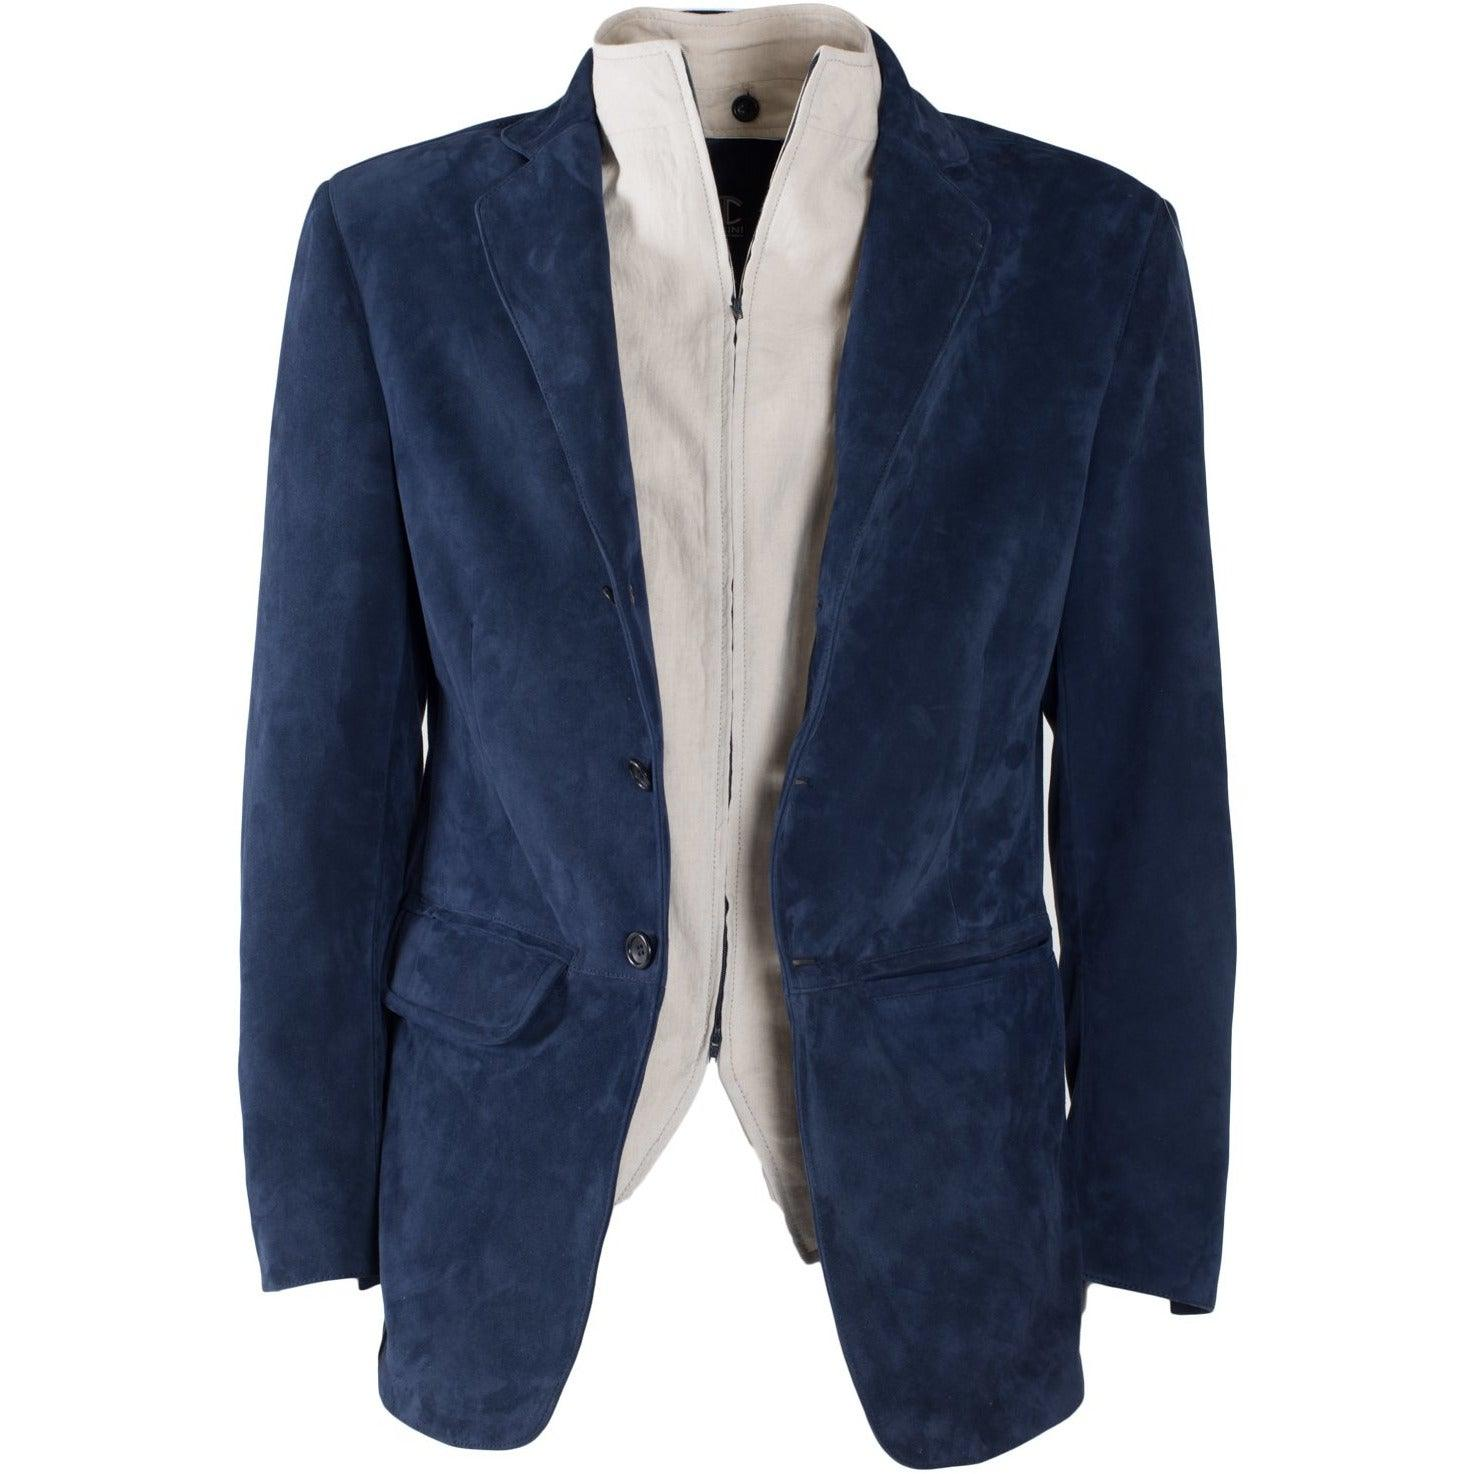 Jennifer Tattanelli crafted in Florence this men leather jacket,meticulously designed, contemporary and sartorial finished, this soft suede blazer is special and unique